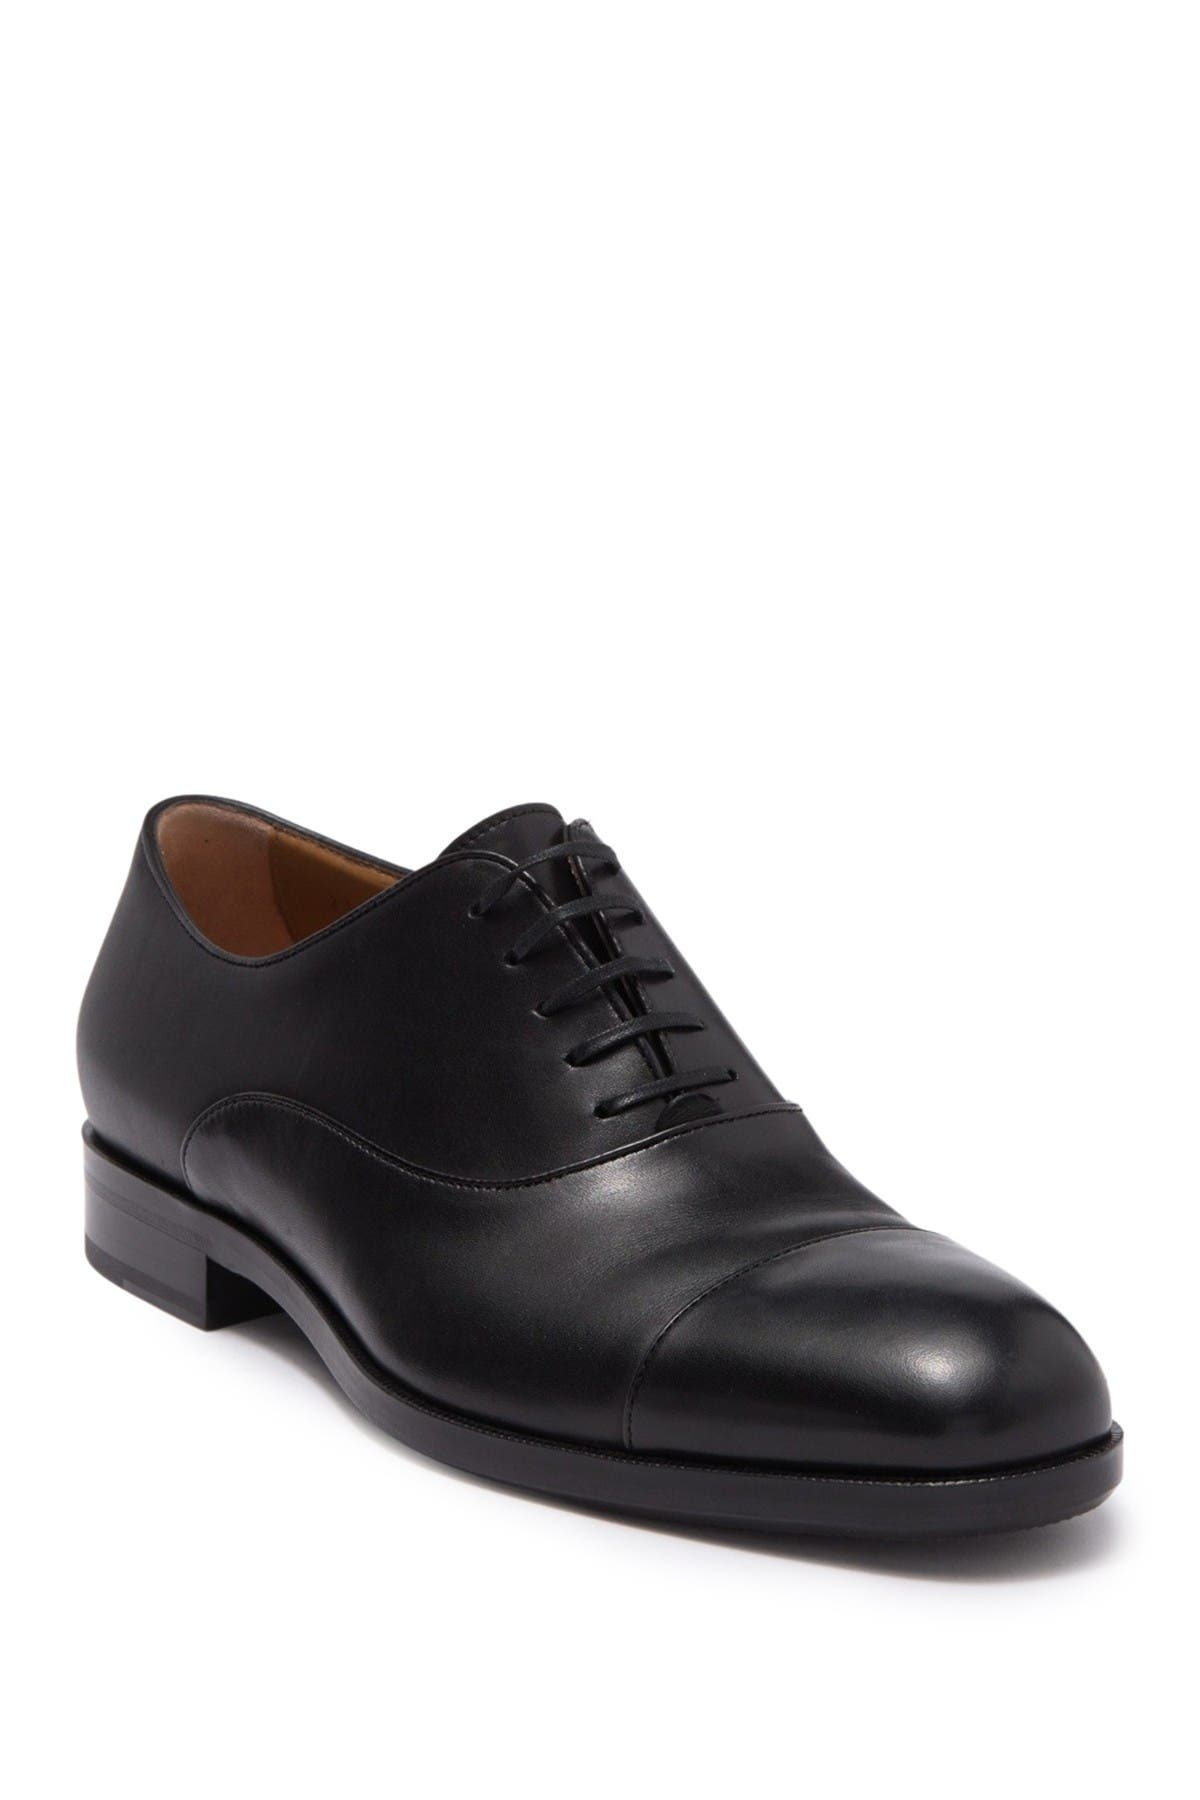 Image of BOSS Stanford Cap Toe Leather Oxford